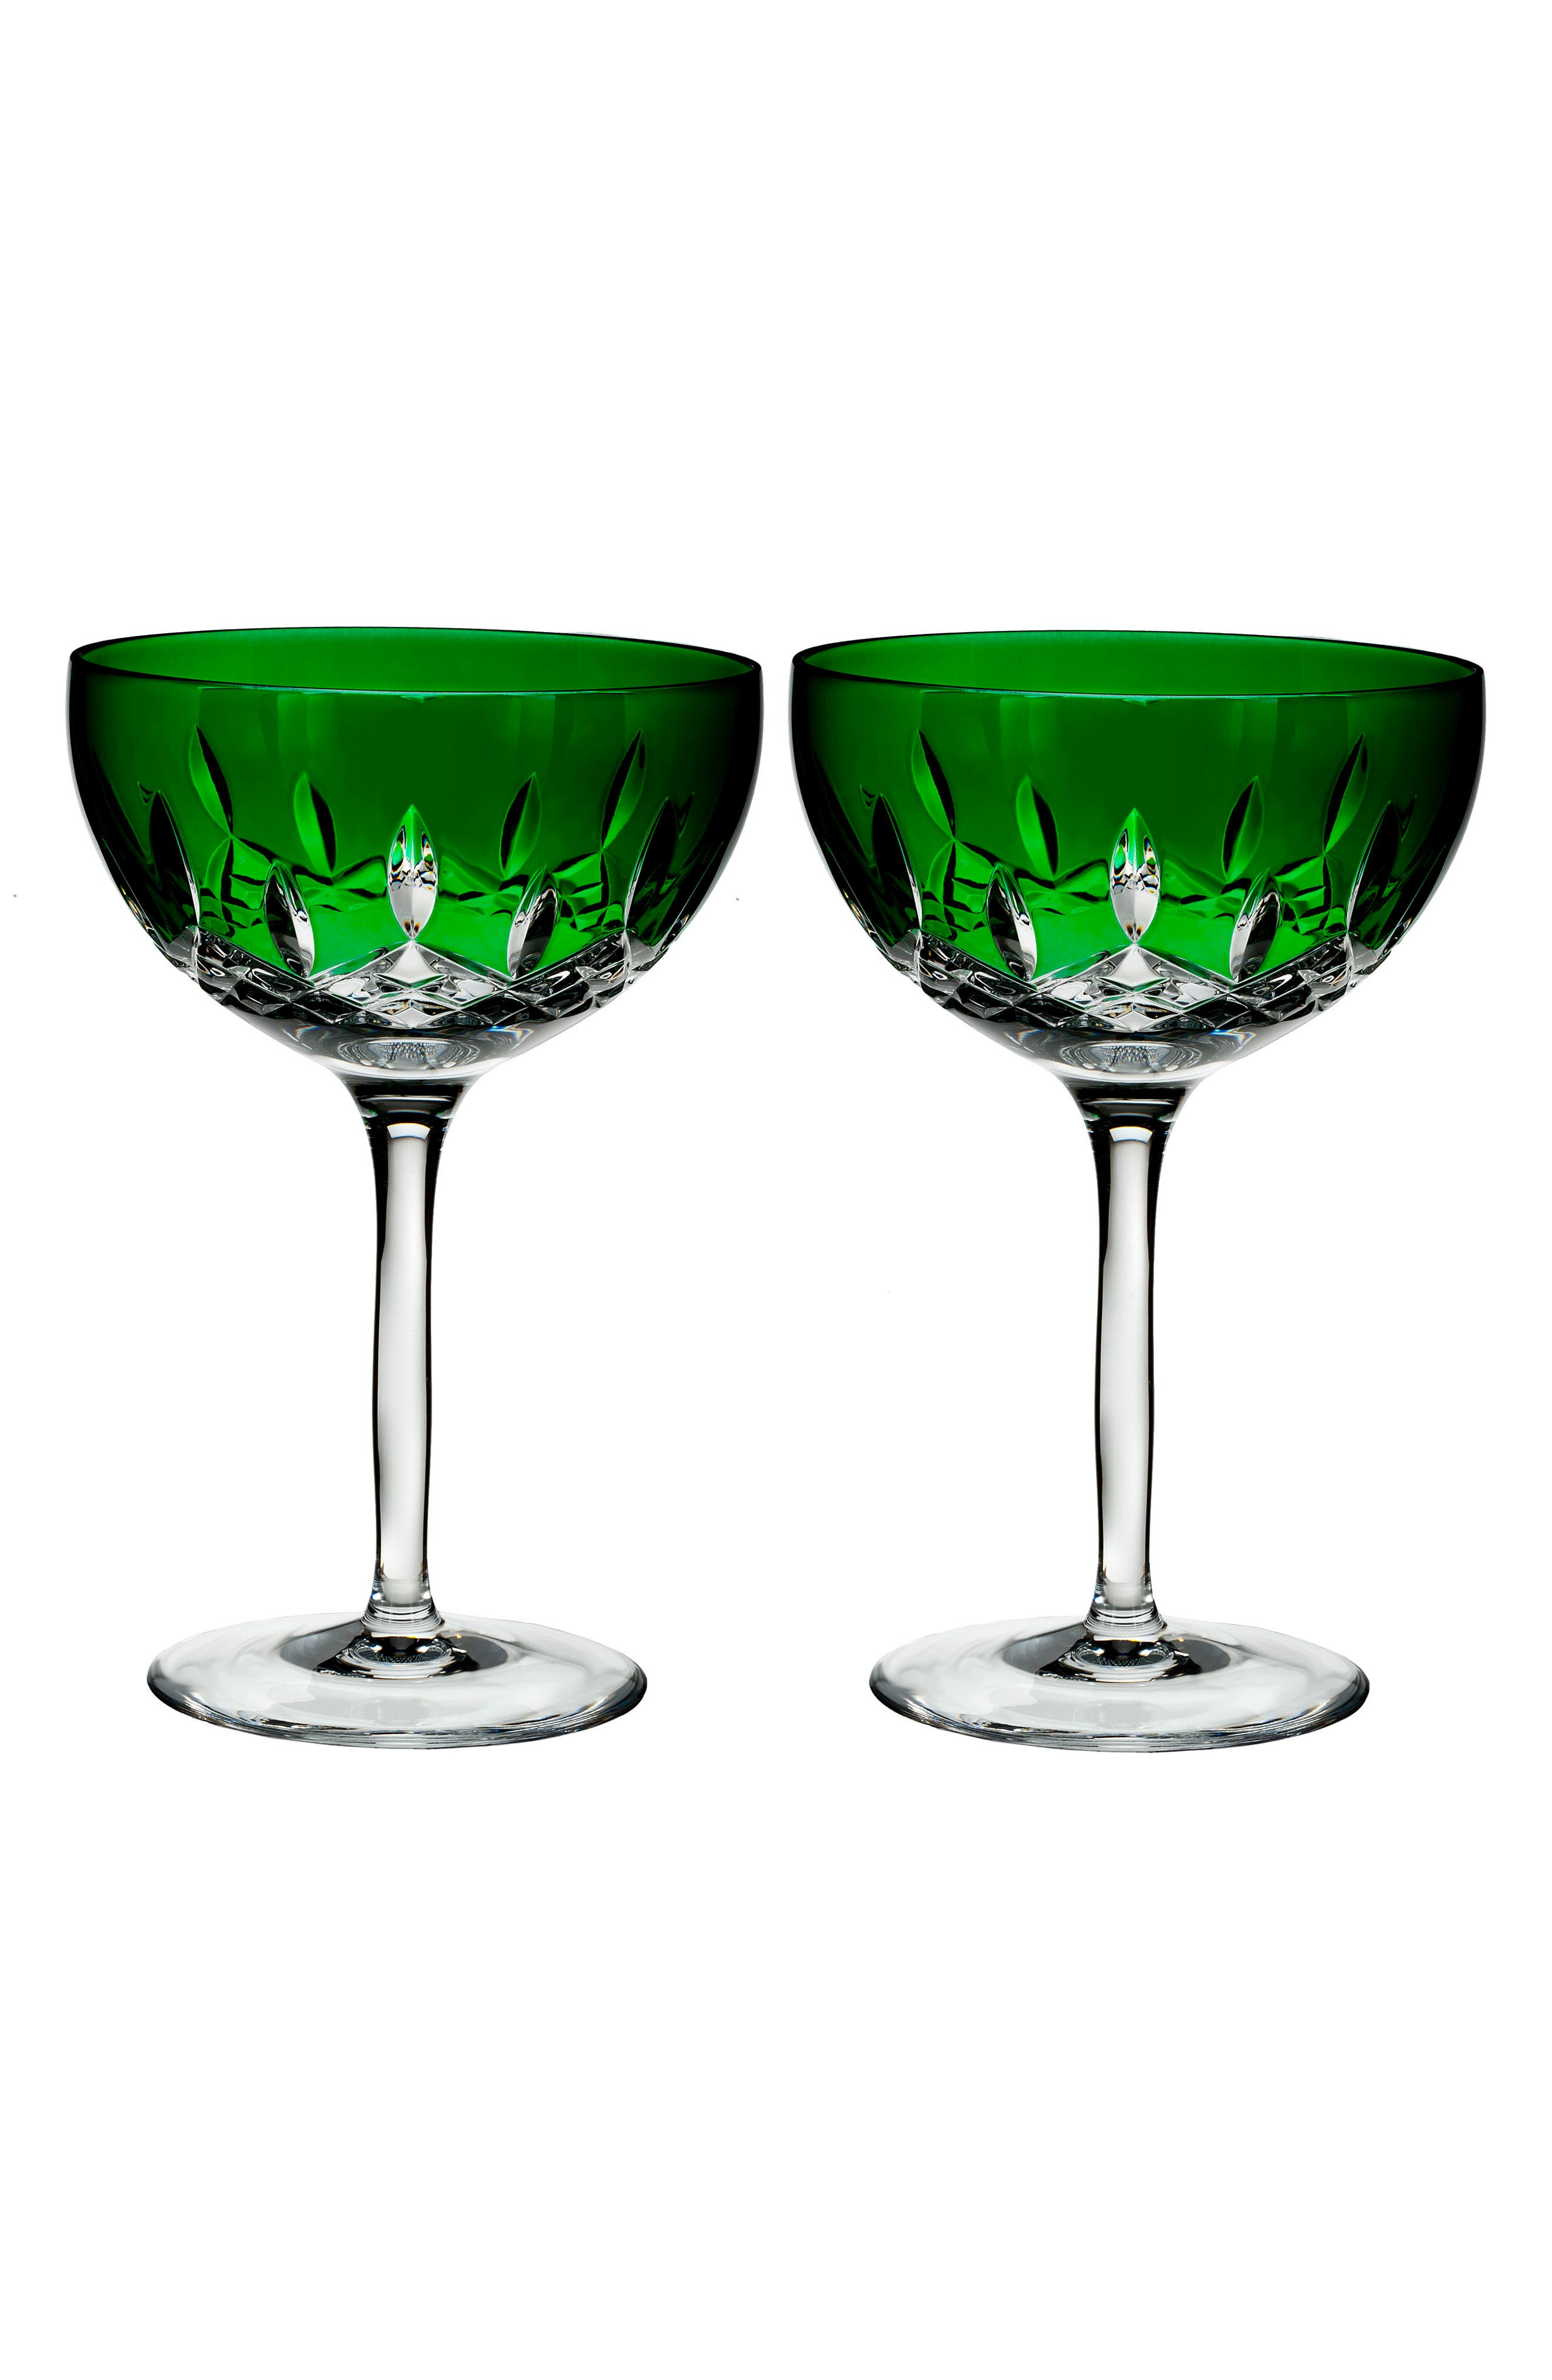 Waterford Lismore Pops Set of 2 Emerald Lead Crystal Cocktail Glasses